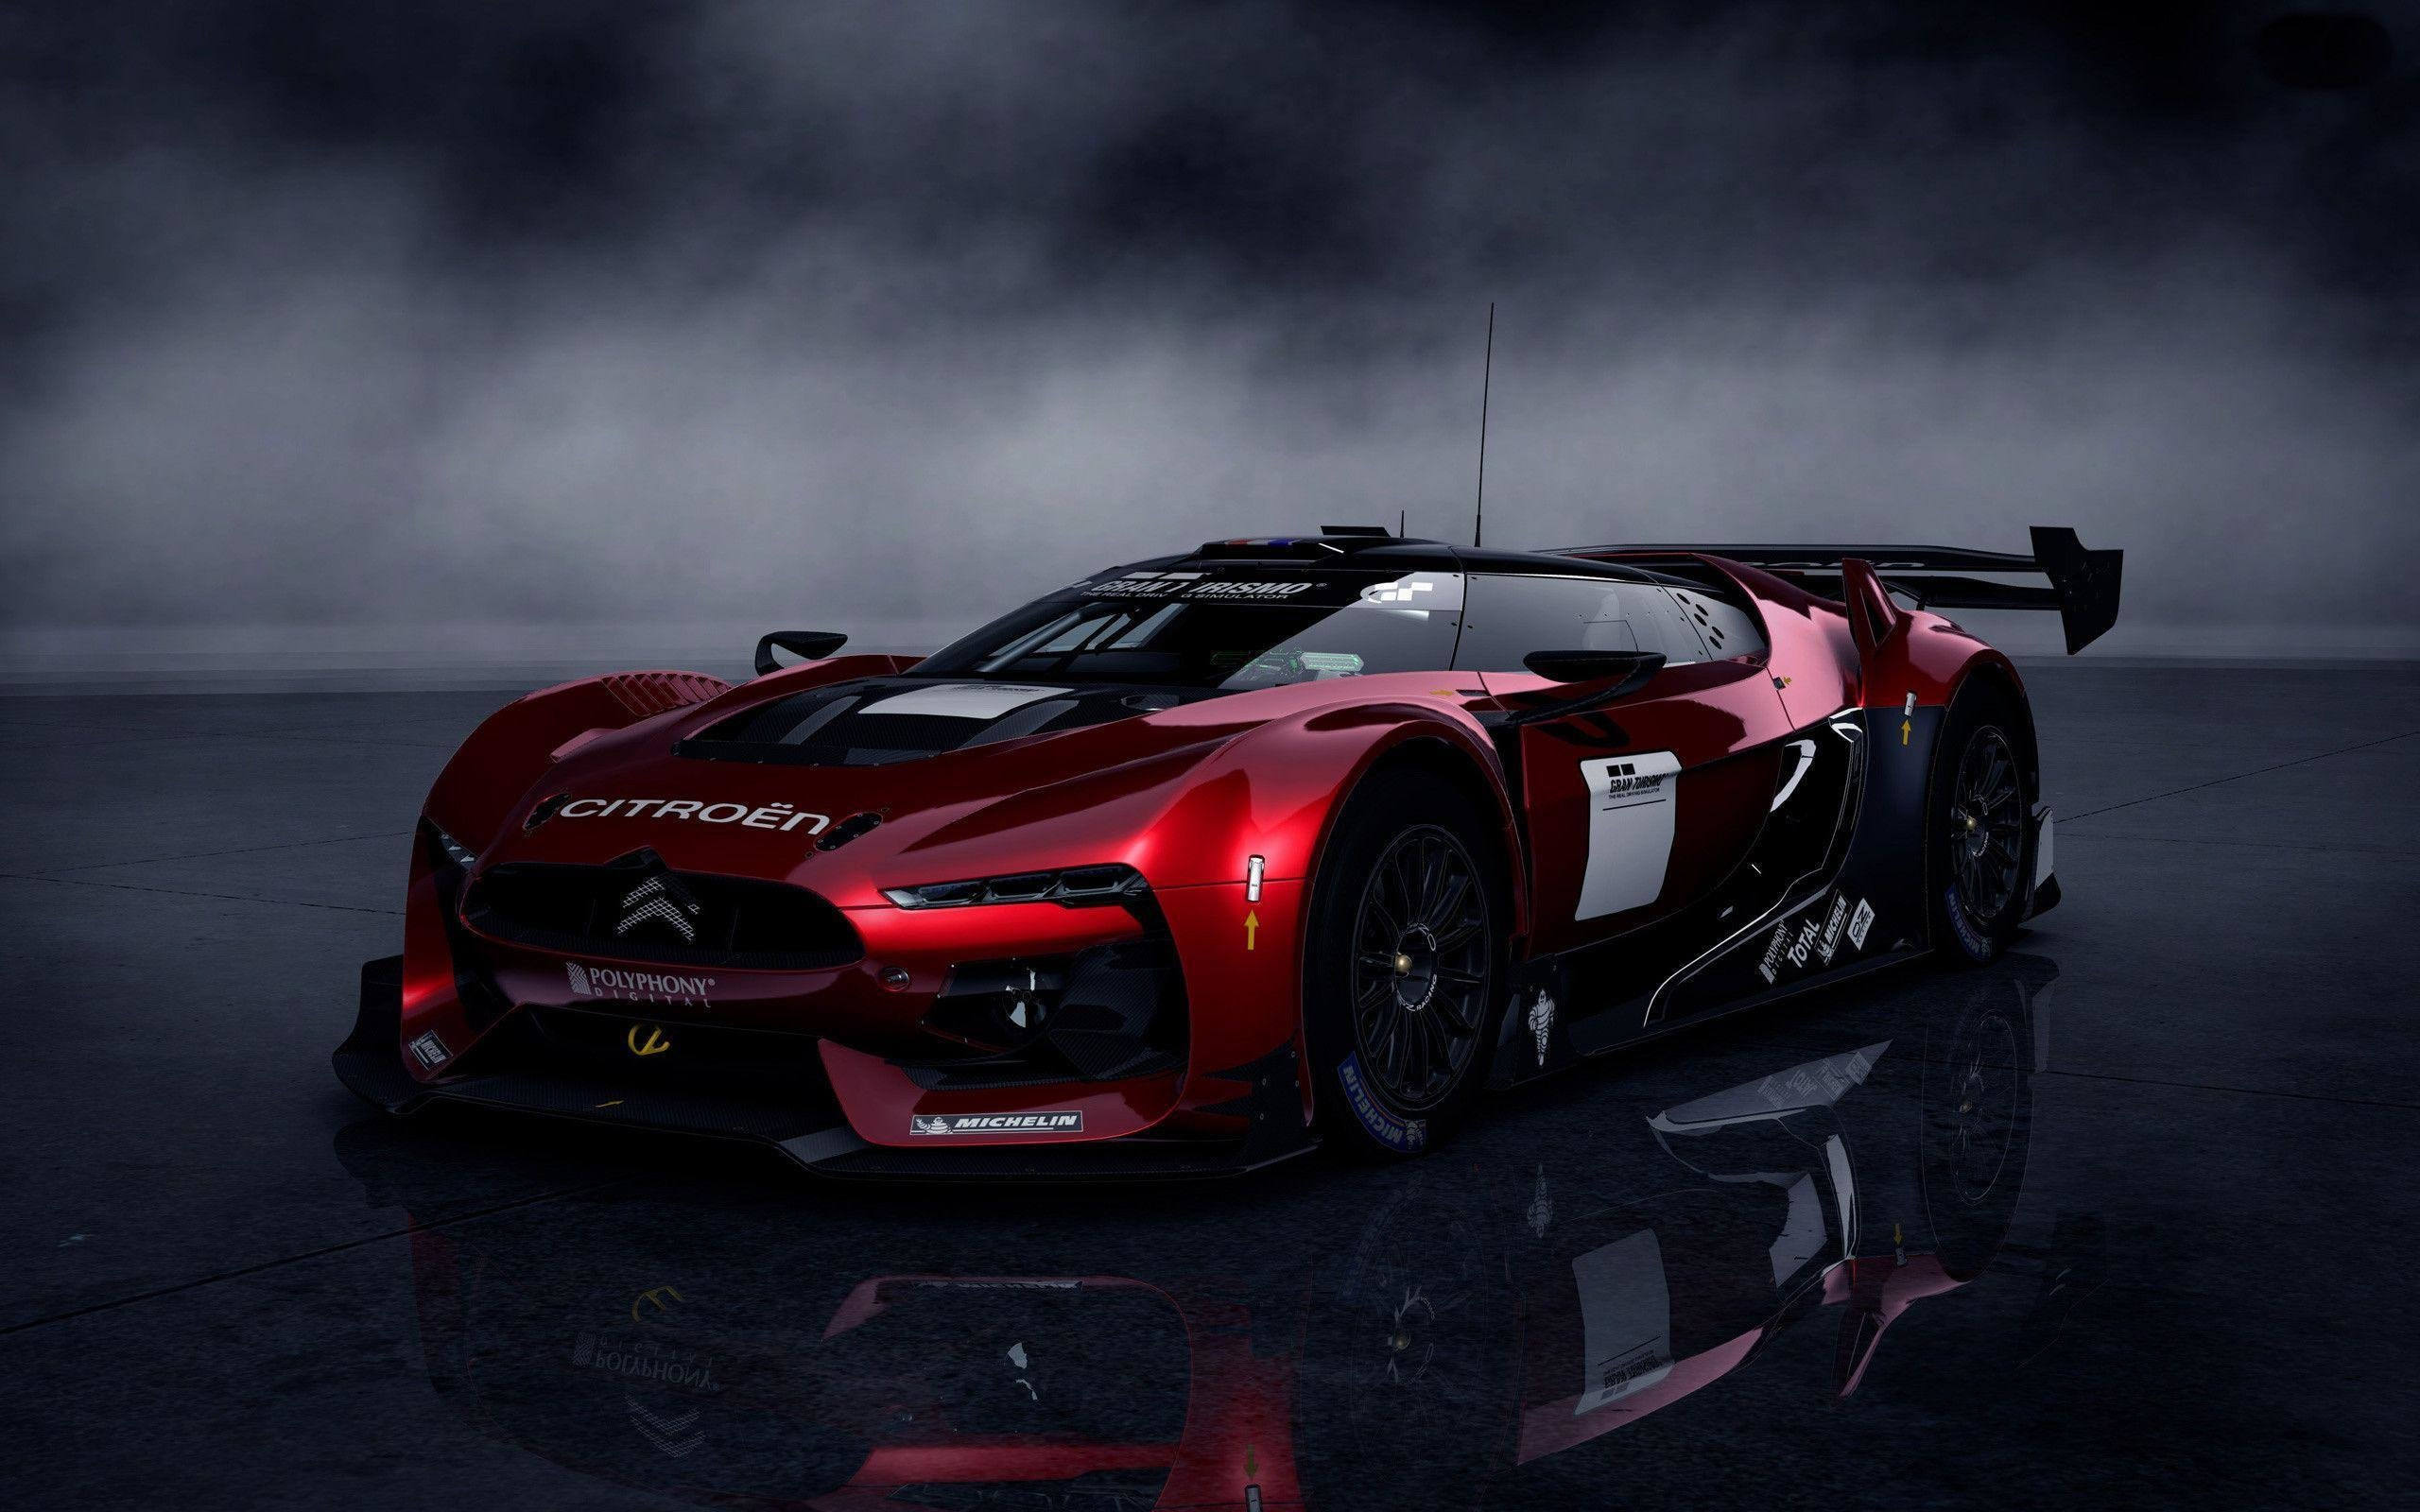 Latest Cool Car Wallpapers Wallpaper Cave Free Download